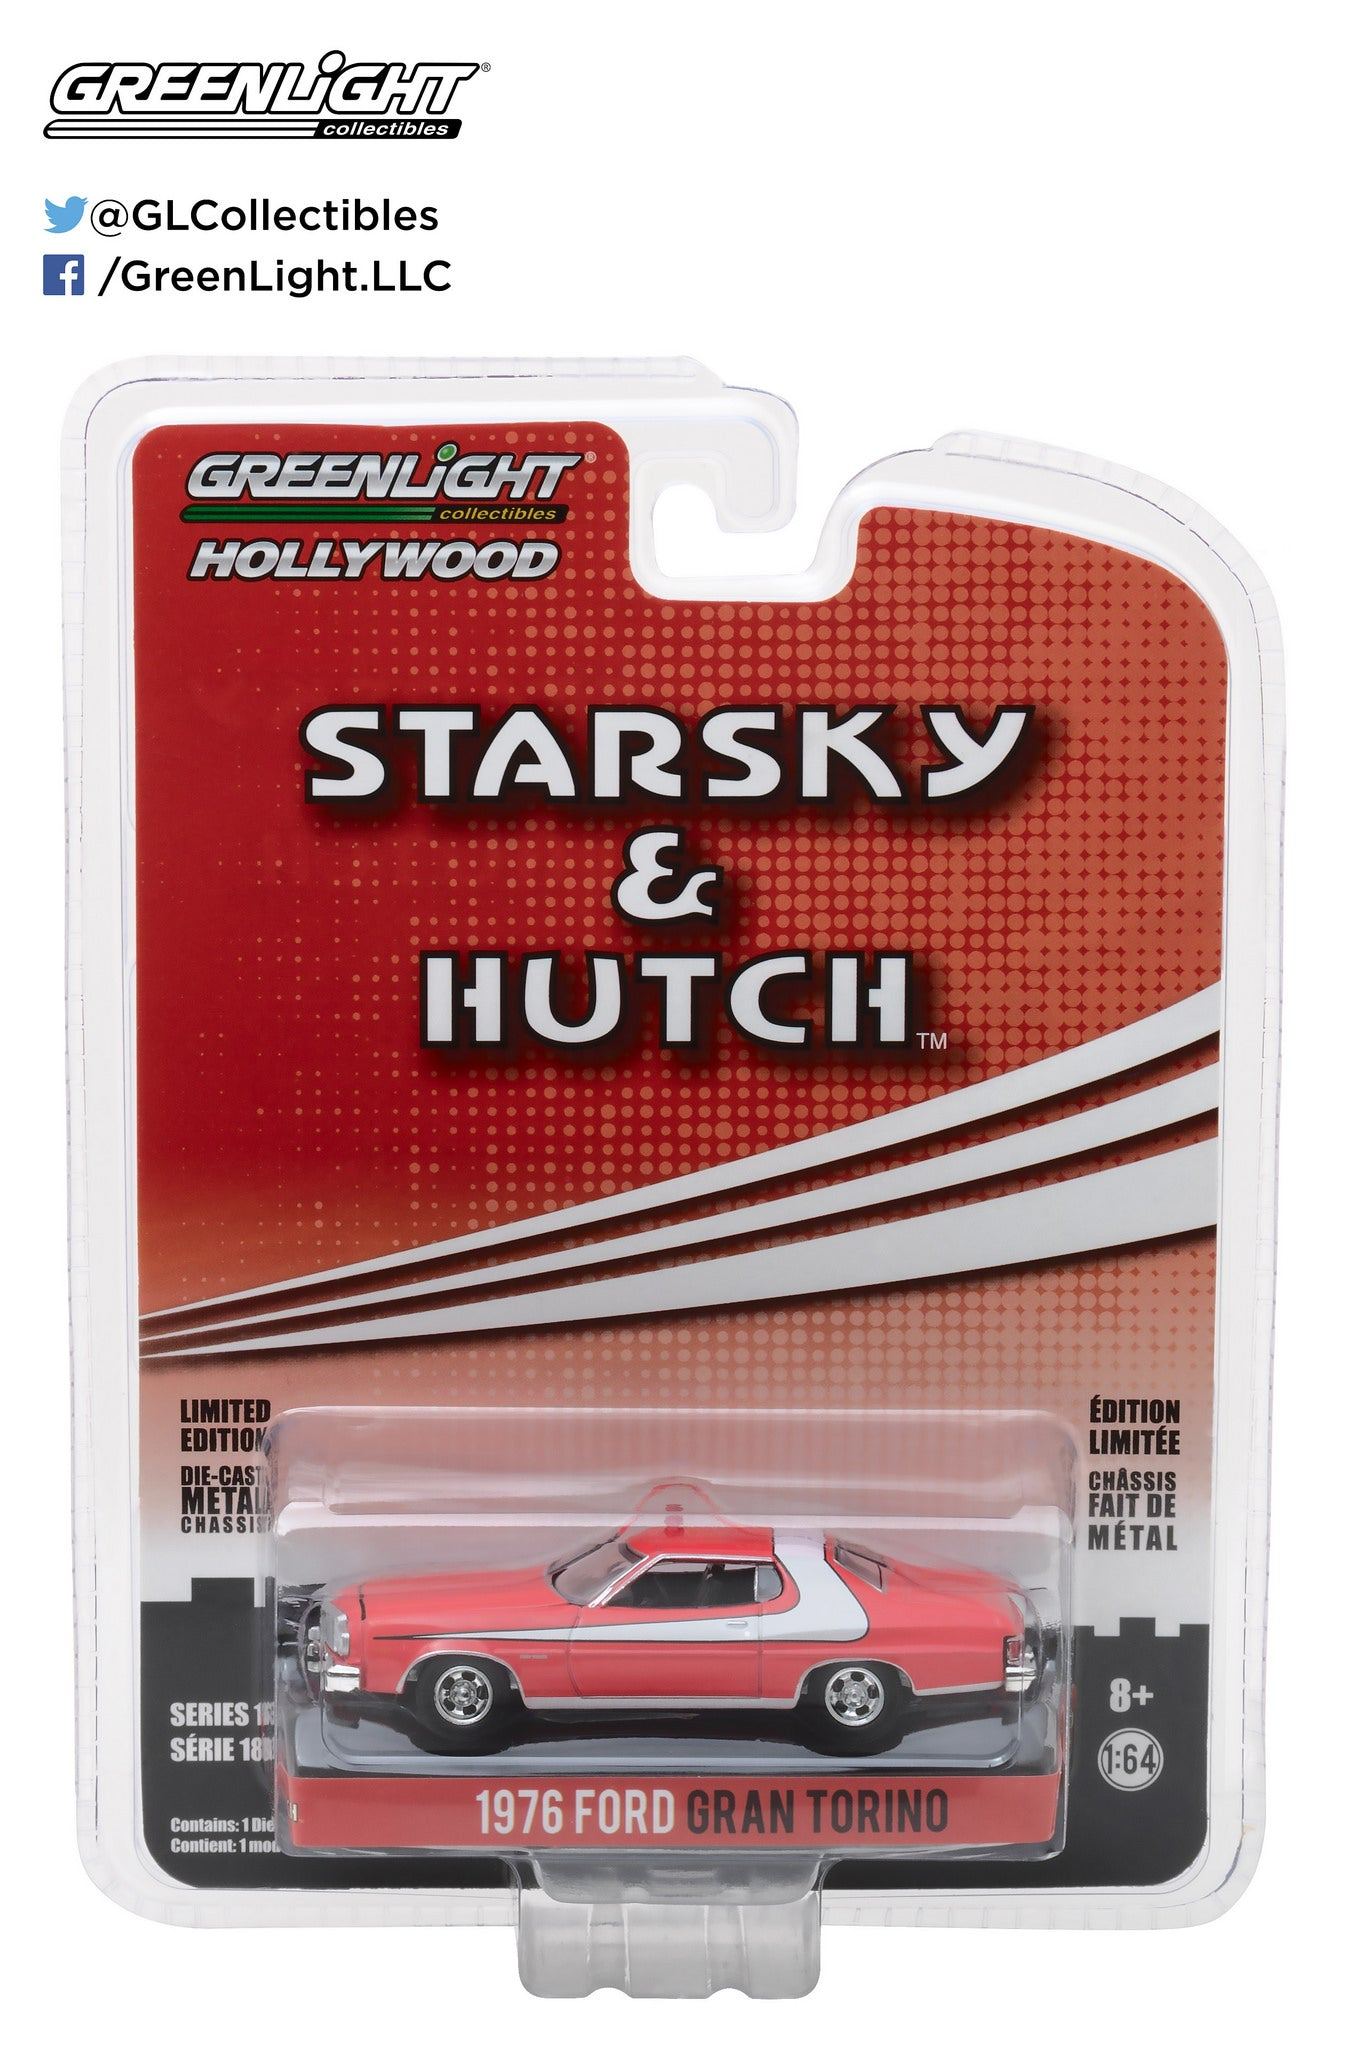 GreenLight 1/64 Hollywood - Starsky and Hutch (TV Series 1975-79) - 1976 Ford Gran Torino 44780-A